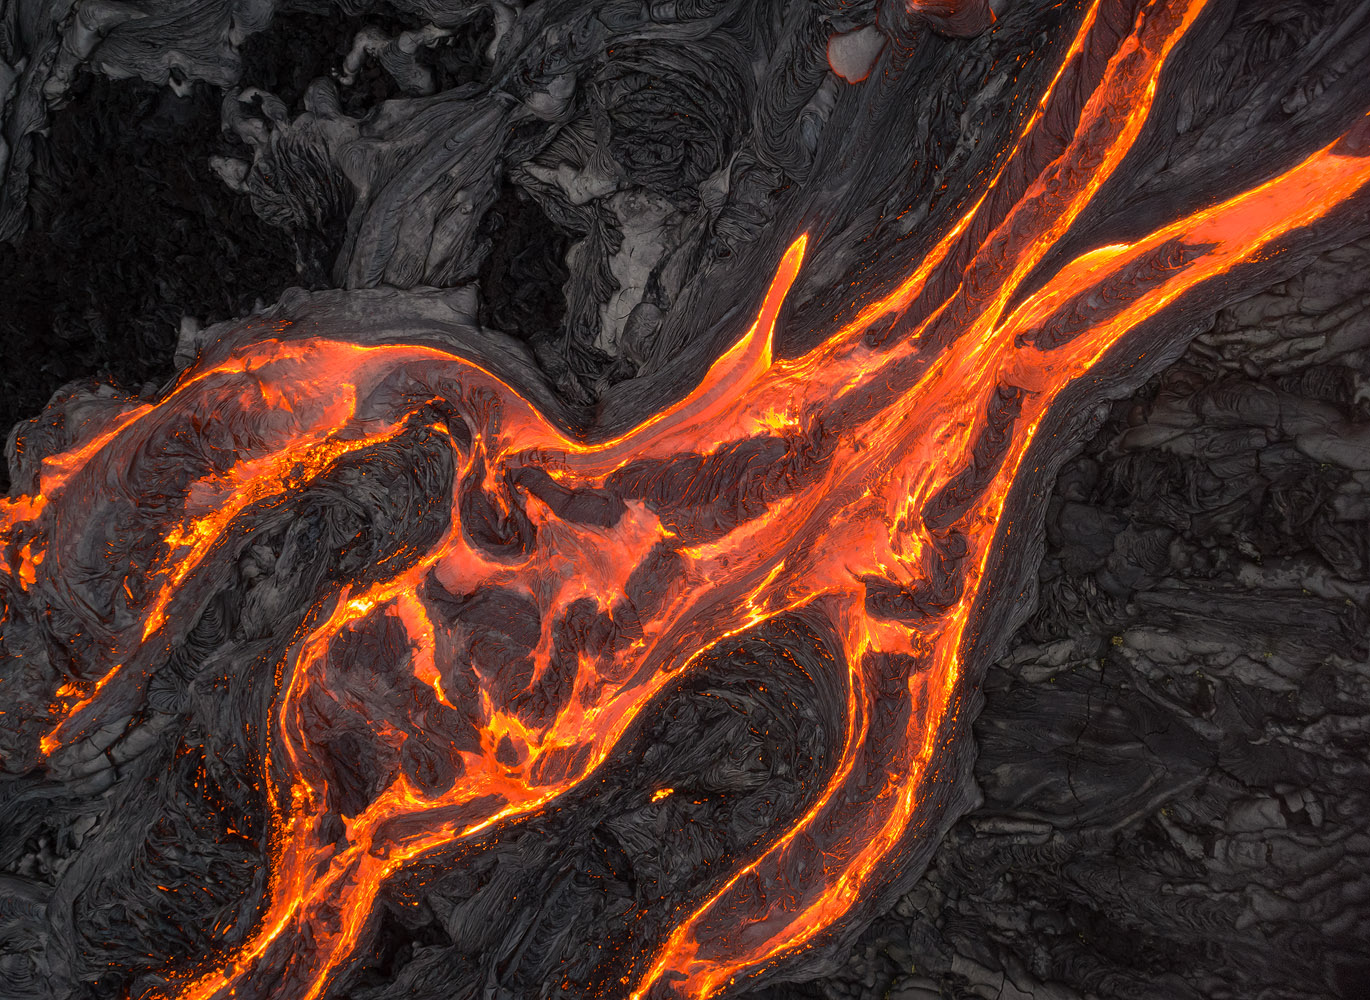 Lava surface-flows in Kilauea Volcano, Hawaii. A top-down perspective resulted in a deliberate lack of depth, which in turn allowed me to concentrate the viewer on the shape of the flows.